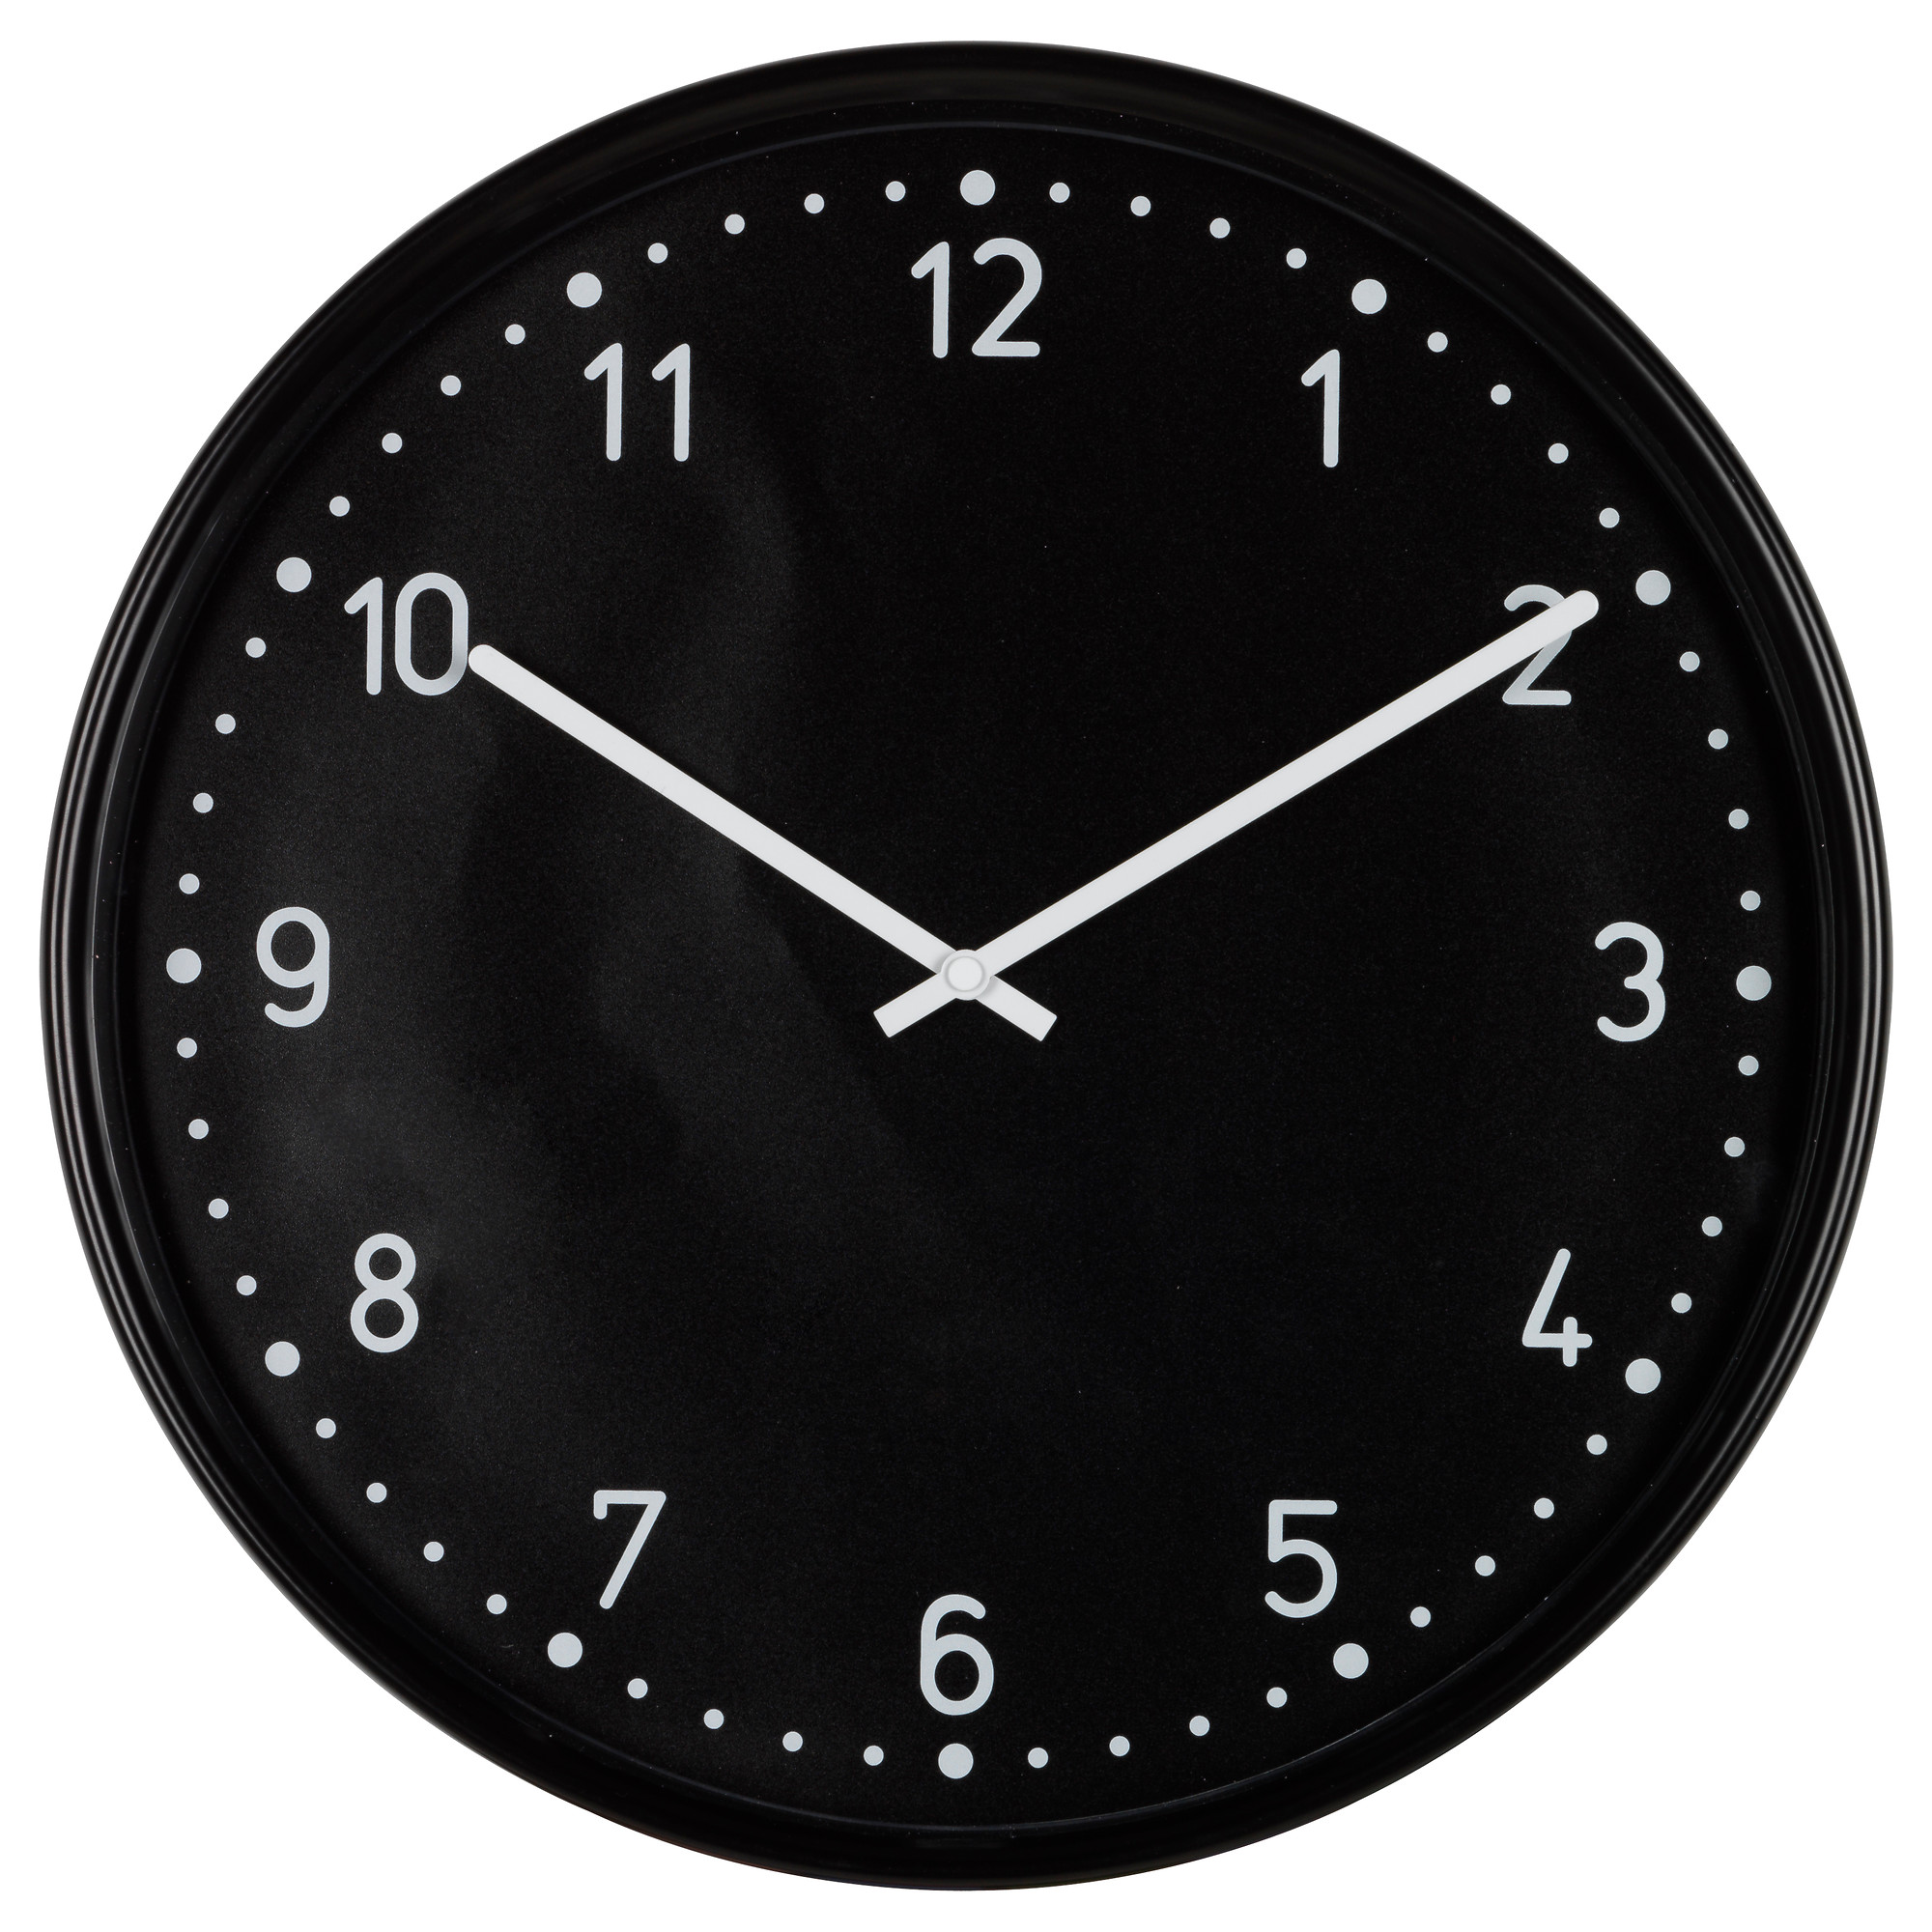 Wall clocks table clocks ikea bondis wall clock black depth 1 diameter 15 depth amipublicfo Image collections